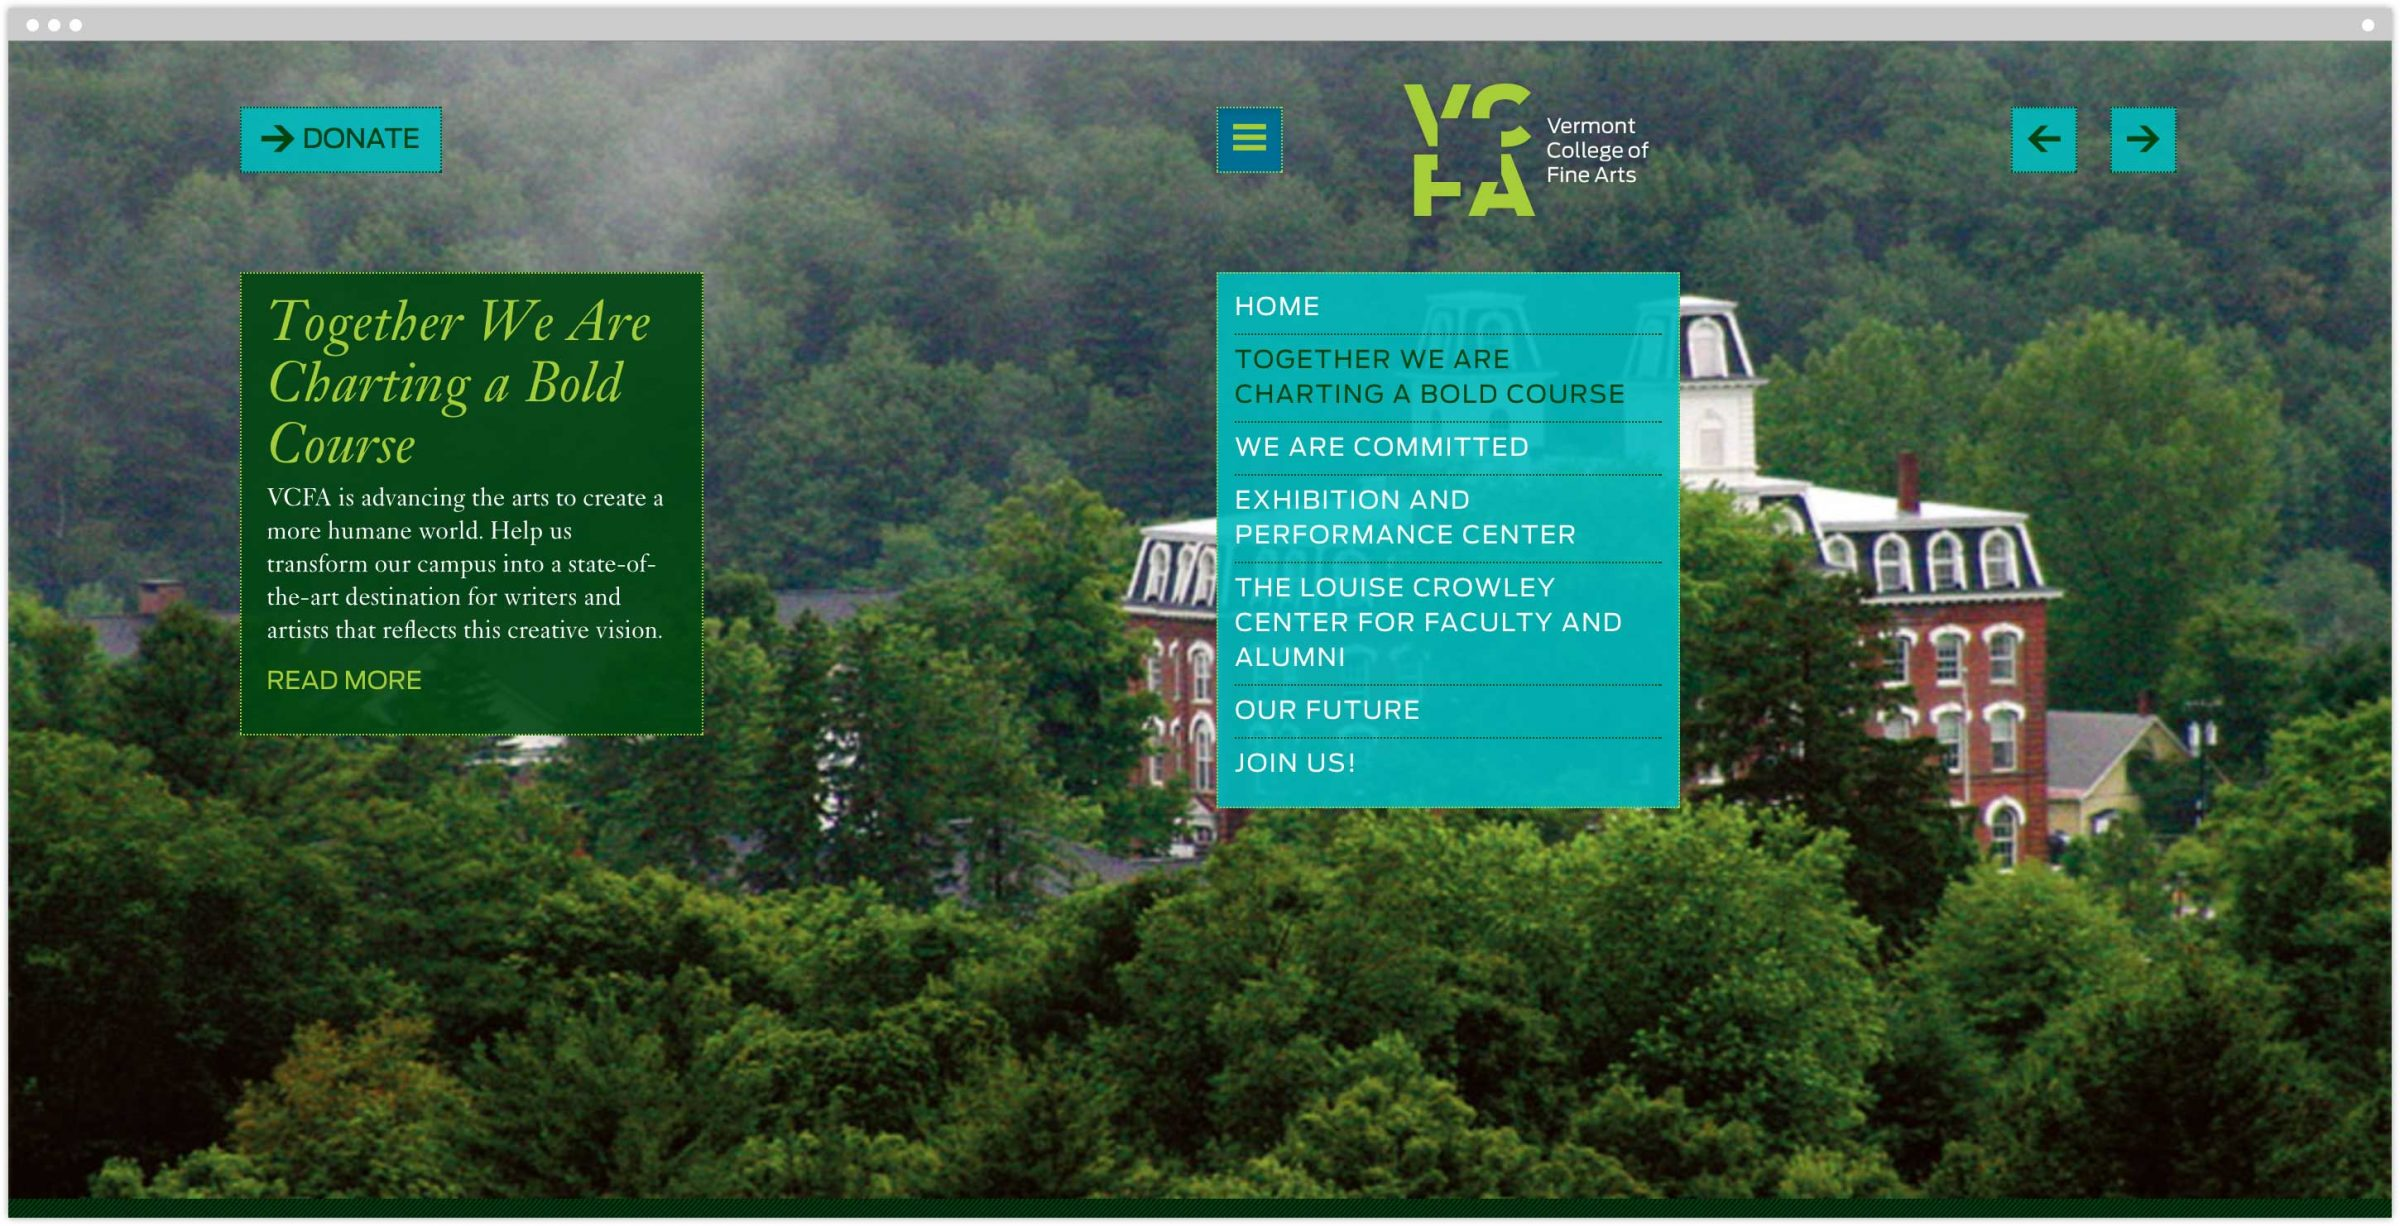 Vermont College of Fine Arts campaign homepage with navigation exposed